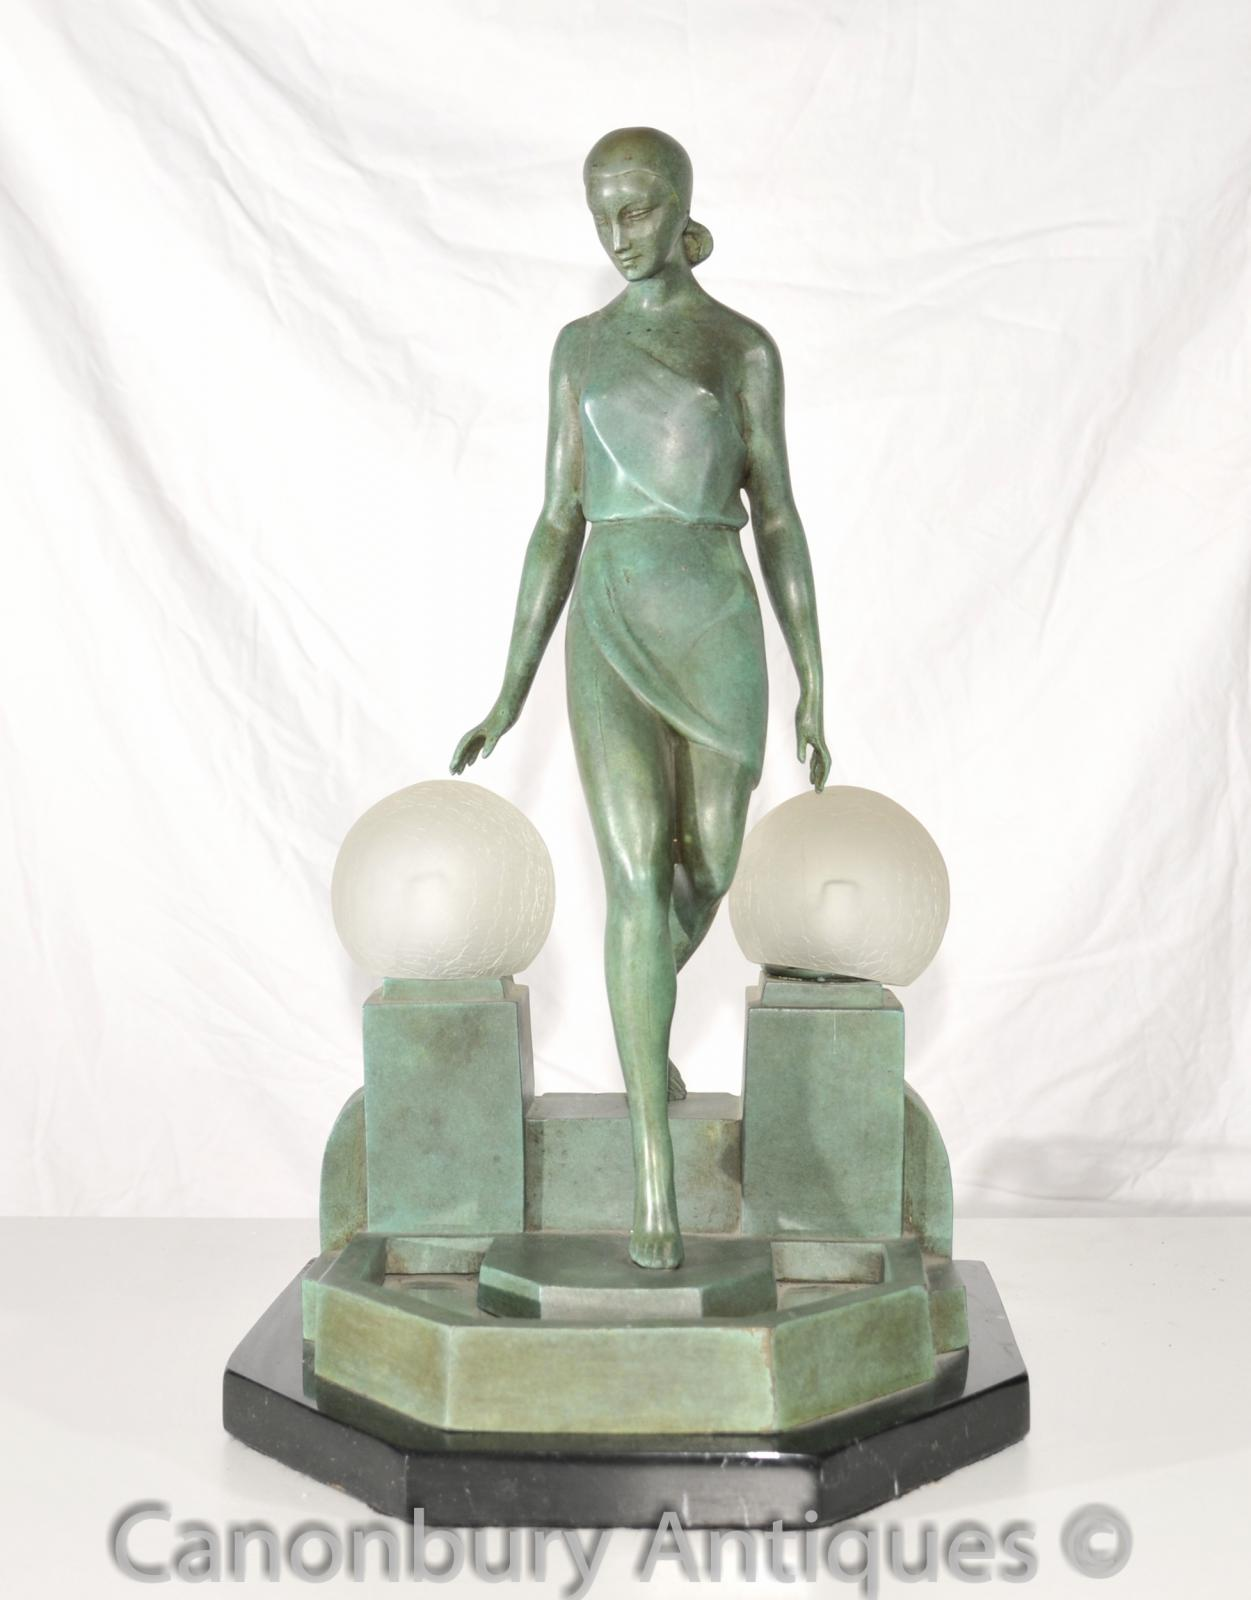 Original Art Deco Bronze Figurine Lamp Signed Fayral  :  1463970914 zoom 79 from www.ebay.co.uk size 1251 x 1600 jpeg 110kB